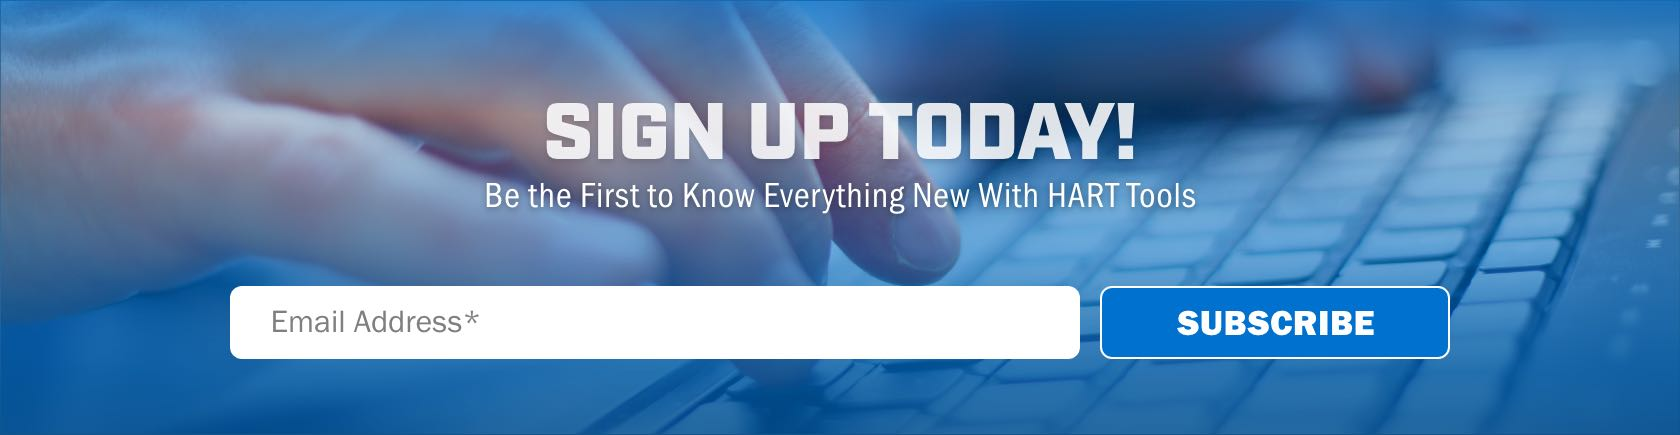 Be The First To Know Everything New With HART Tools - Sign Up Today.